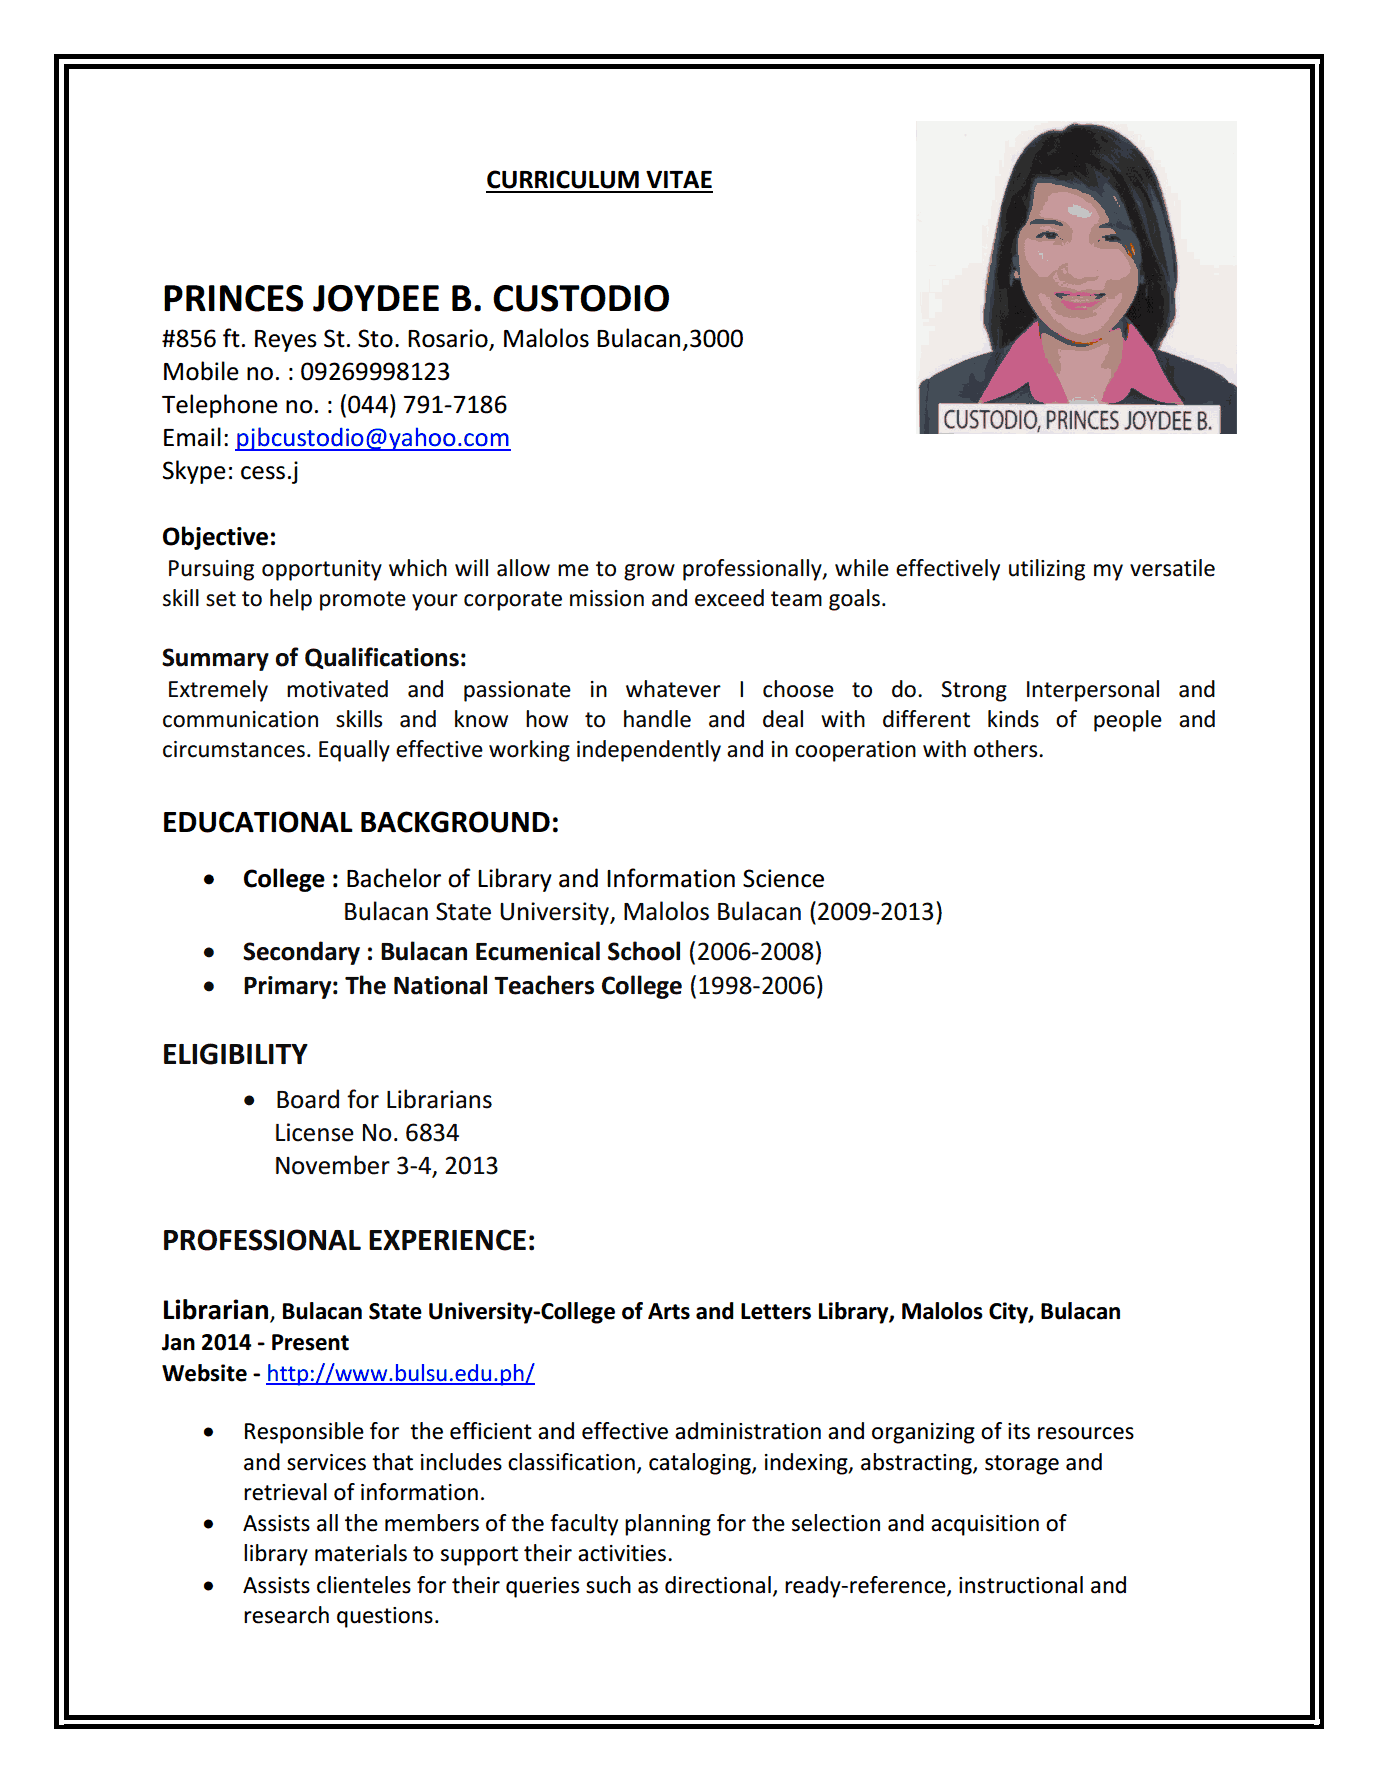 r eacute sum eacute hiring librarians custodio1 custodio2 custodio3